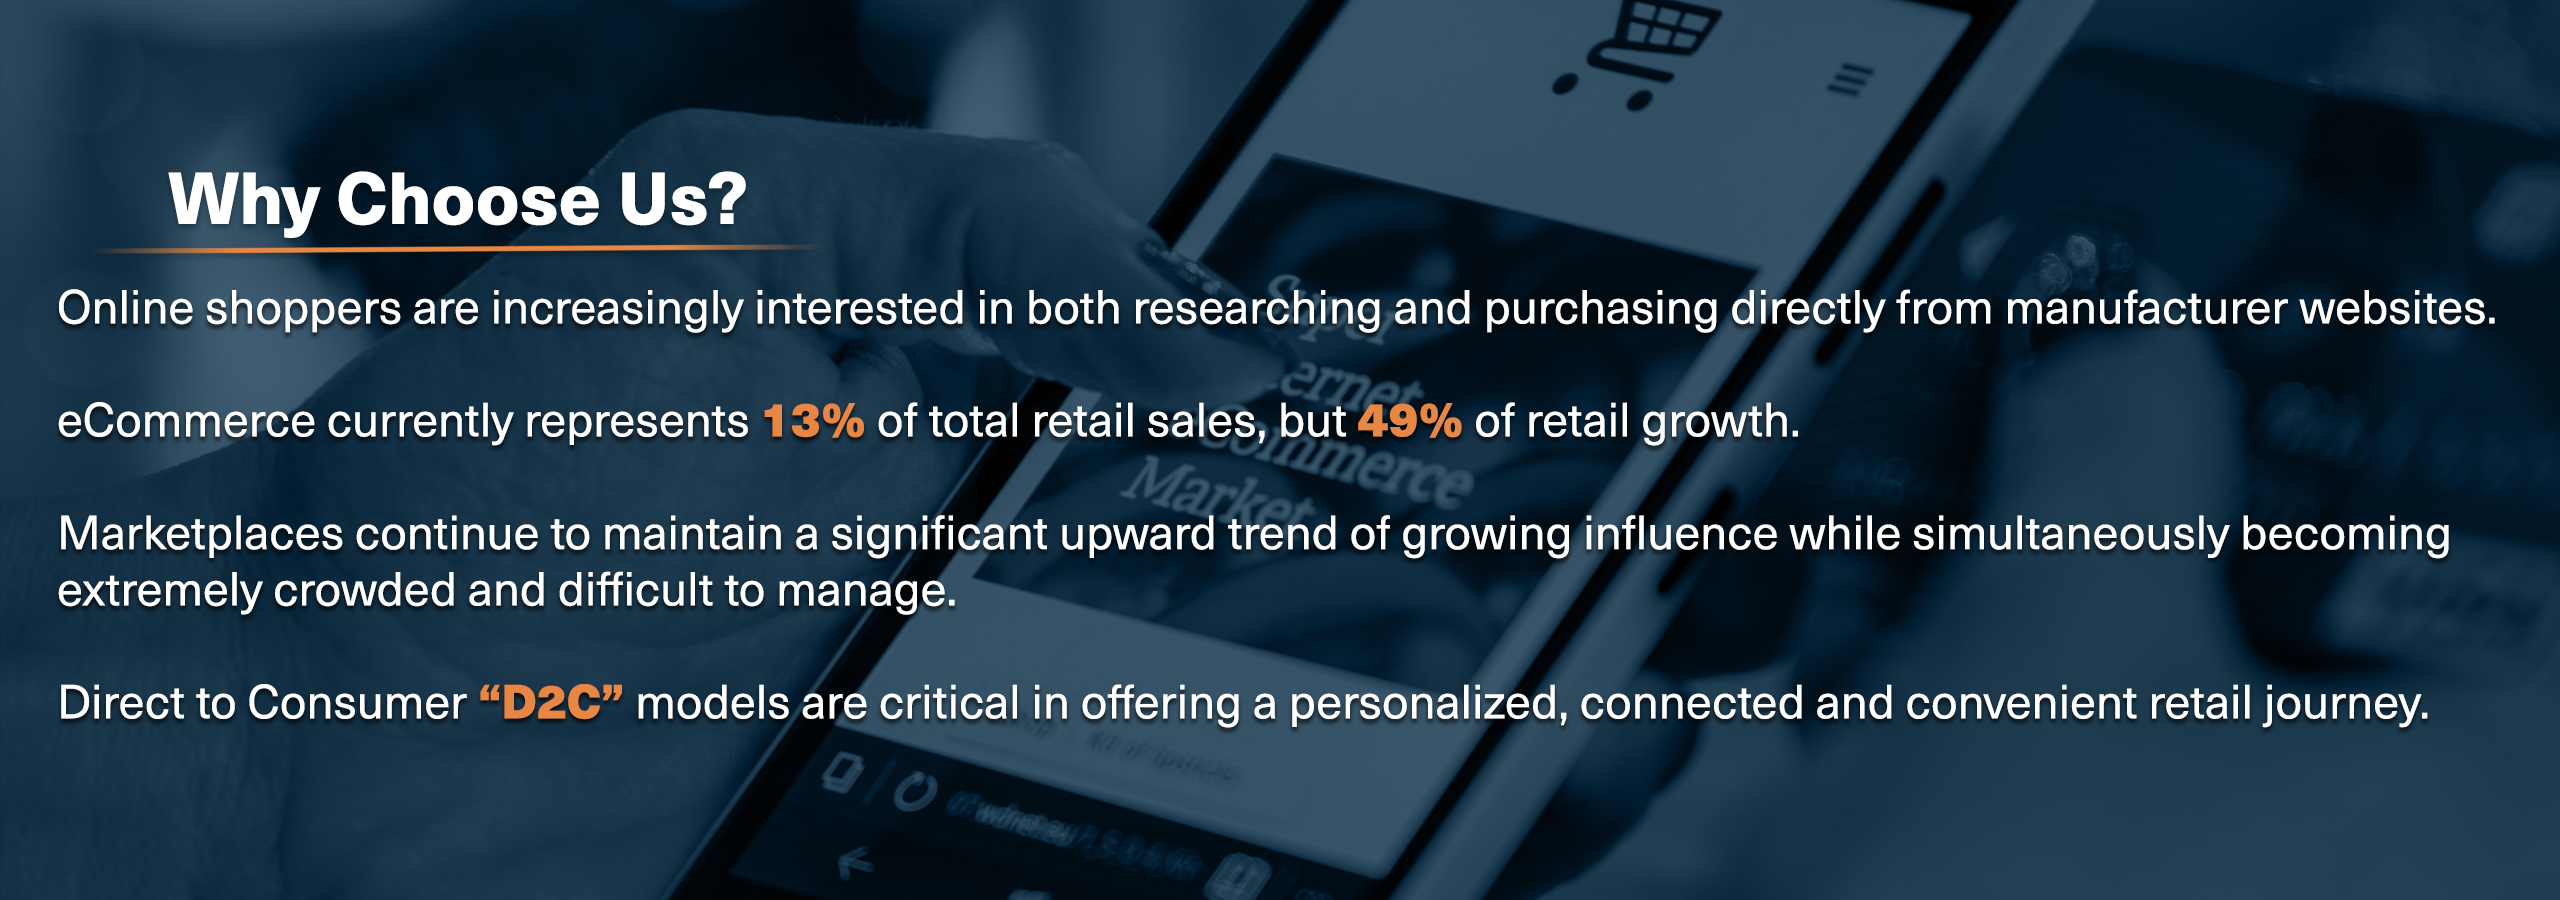 More and more online shoppers are interested in purchasing directly from manufacturers. Having a Direct to Consumer model is critical for capitalizing on this market trend.